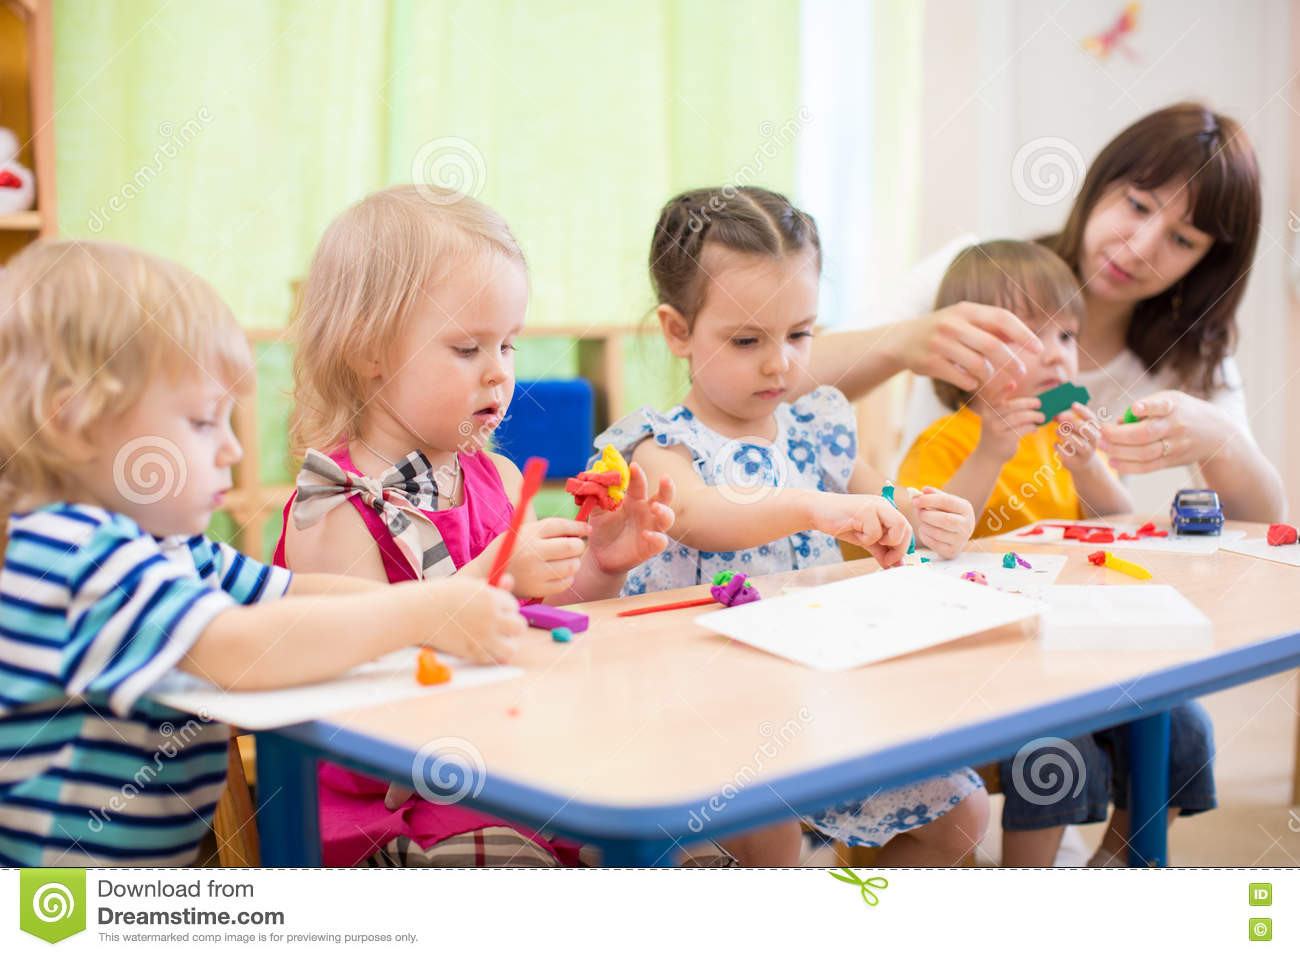 Best ideas about Arts N Craft For Kids . Save or Pin Kids Learning Arts And Crafts In Kindergarten With Teacher Now.